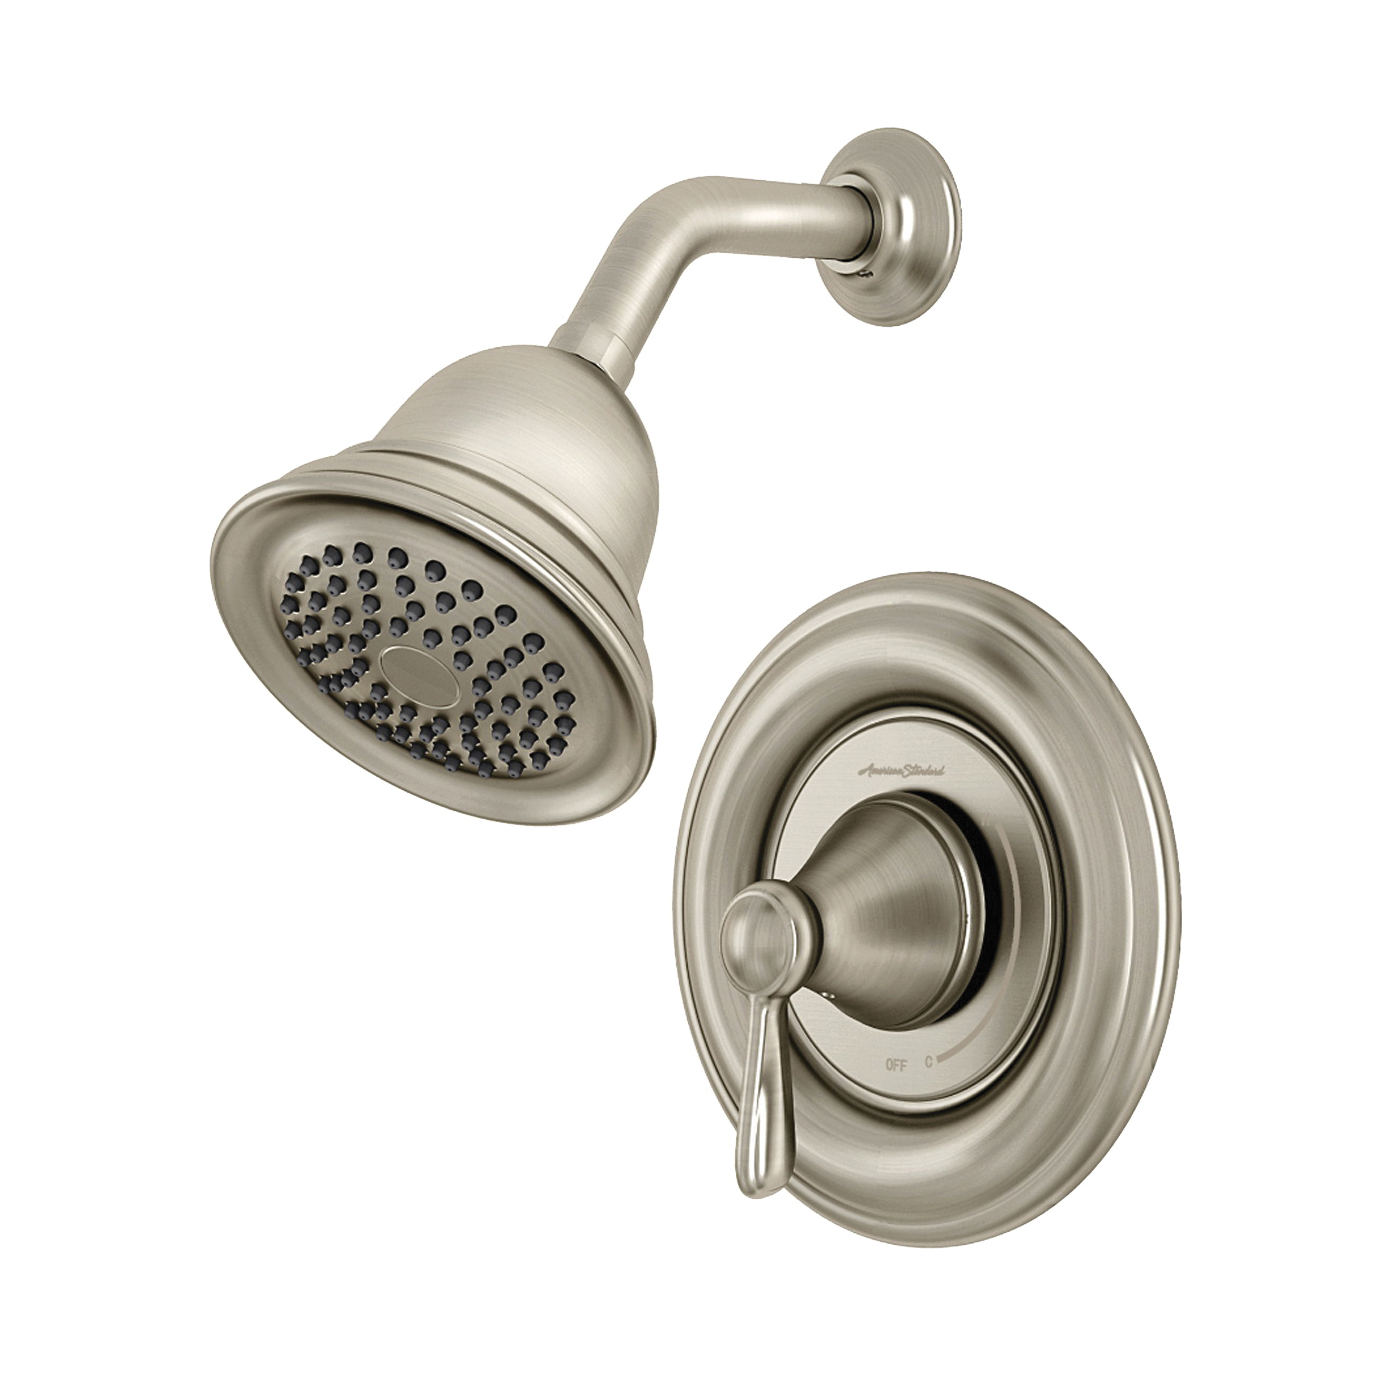 Picture of American Standard 7262S.295 Showerhead and Valve, 2 gpm, Brass, Brushed Nickel, Lever Handle